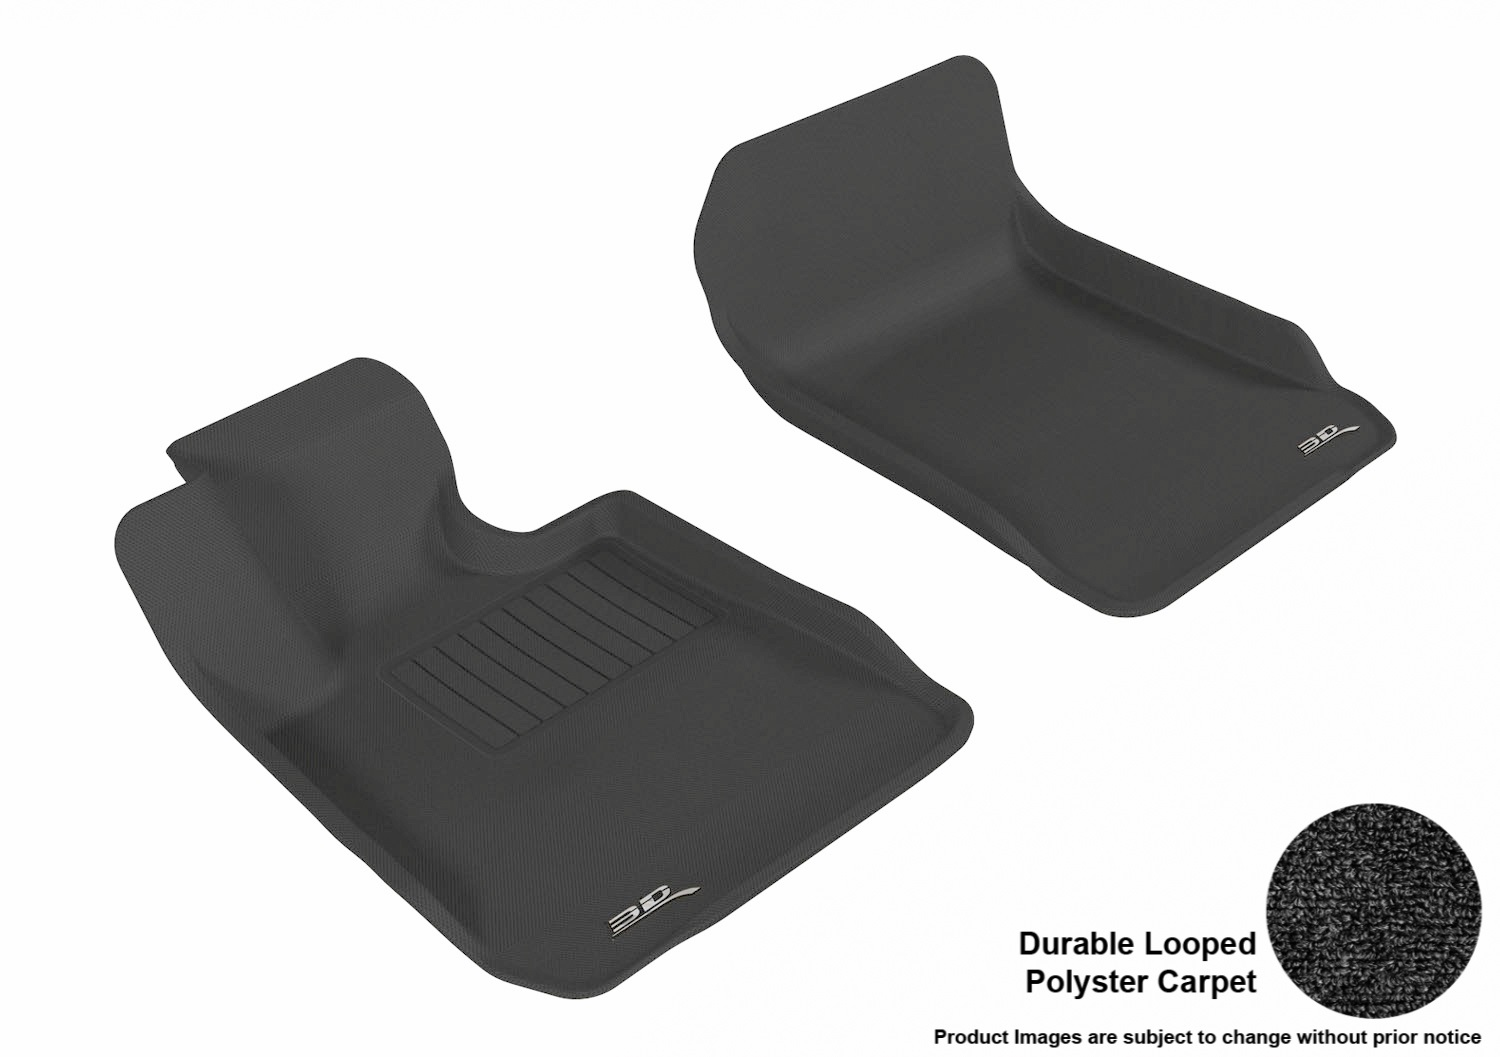 3DM-L1BM00612209 3D MAXpider Floor Mat Set; Black; Durable Looped Poly Carpet; Front